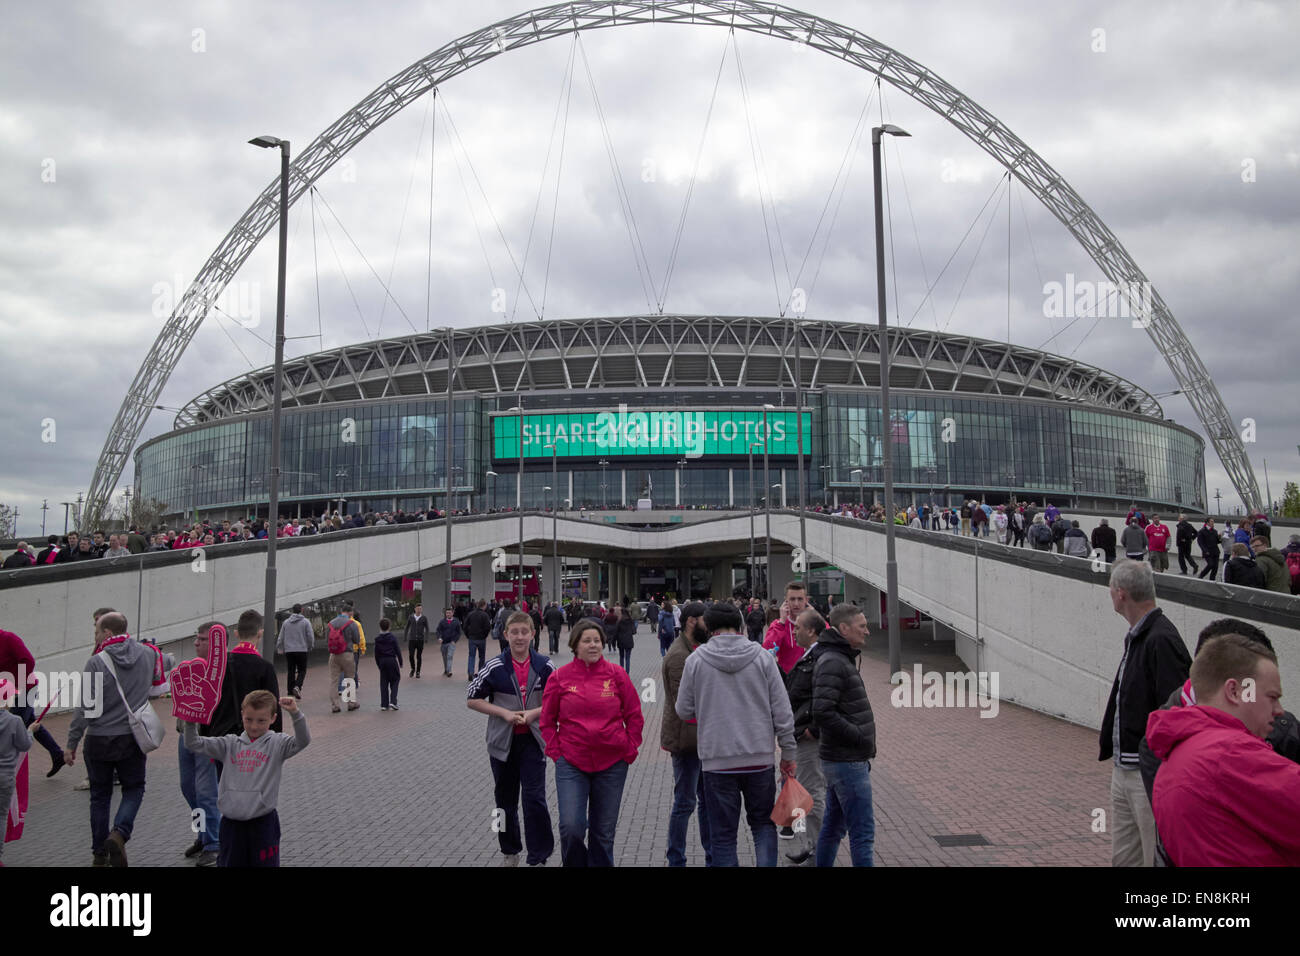 liverpool fans approach Wembley stadium on fa cup semi final day London UK - Stock Image